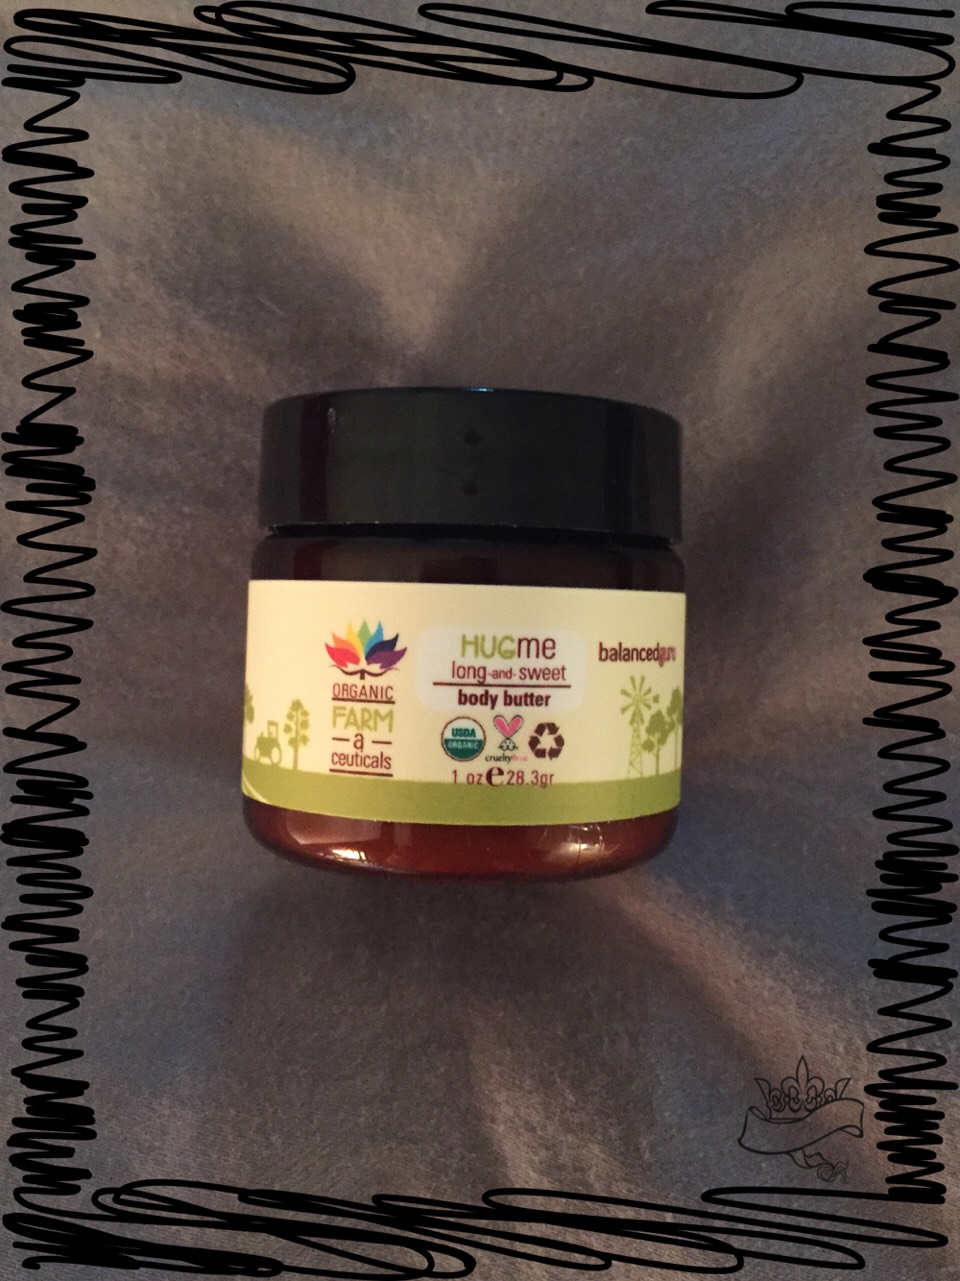 Organic body butter good for all skin types. Enriched with Coconut Oil, Cocoa Butter, Babassu Oil and Vitamin E. Rich and creamy butter will moisturize your skin and roughest dry spots. Safe for expecting mothers, nursing mothers and children.